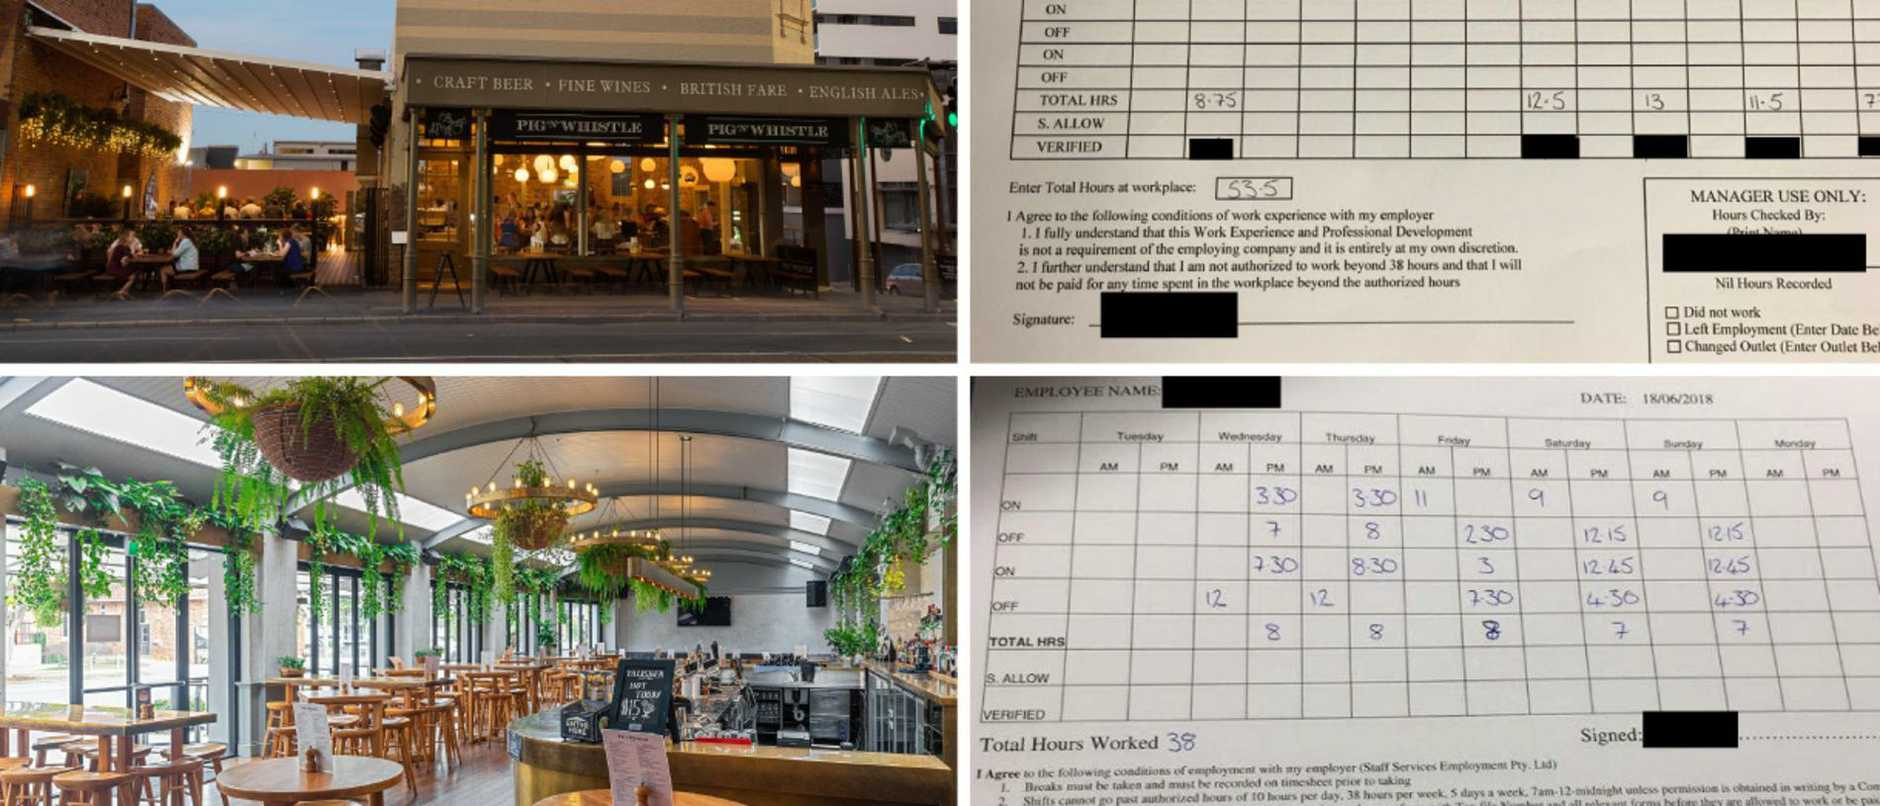 A well-known hospitality group has been accused of taking advantage of some overworked and underpaid workers, under the guise of work experience.